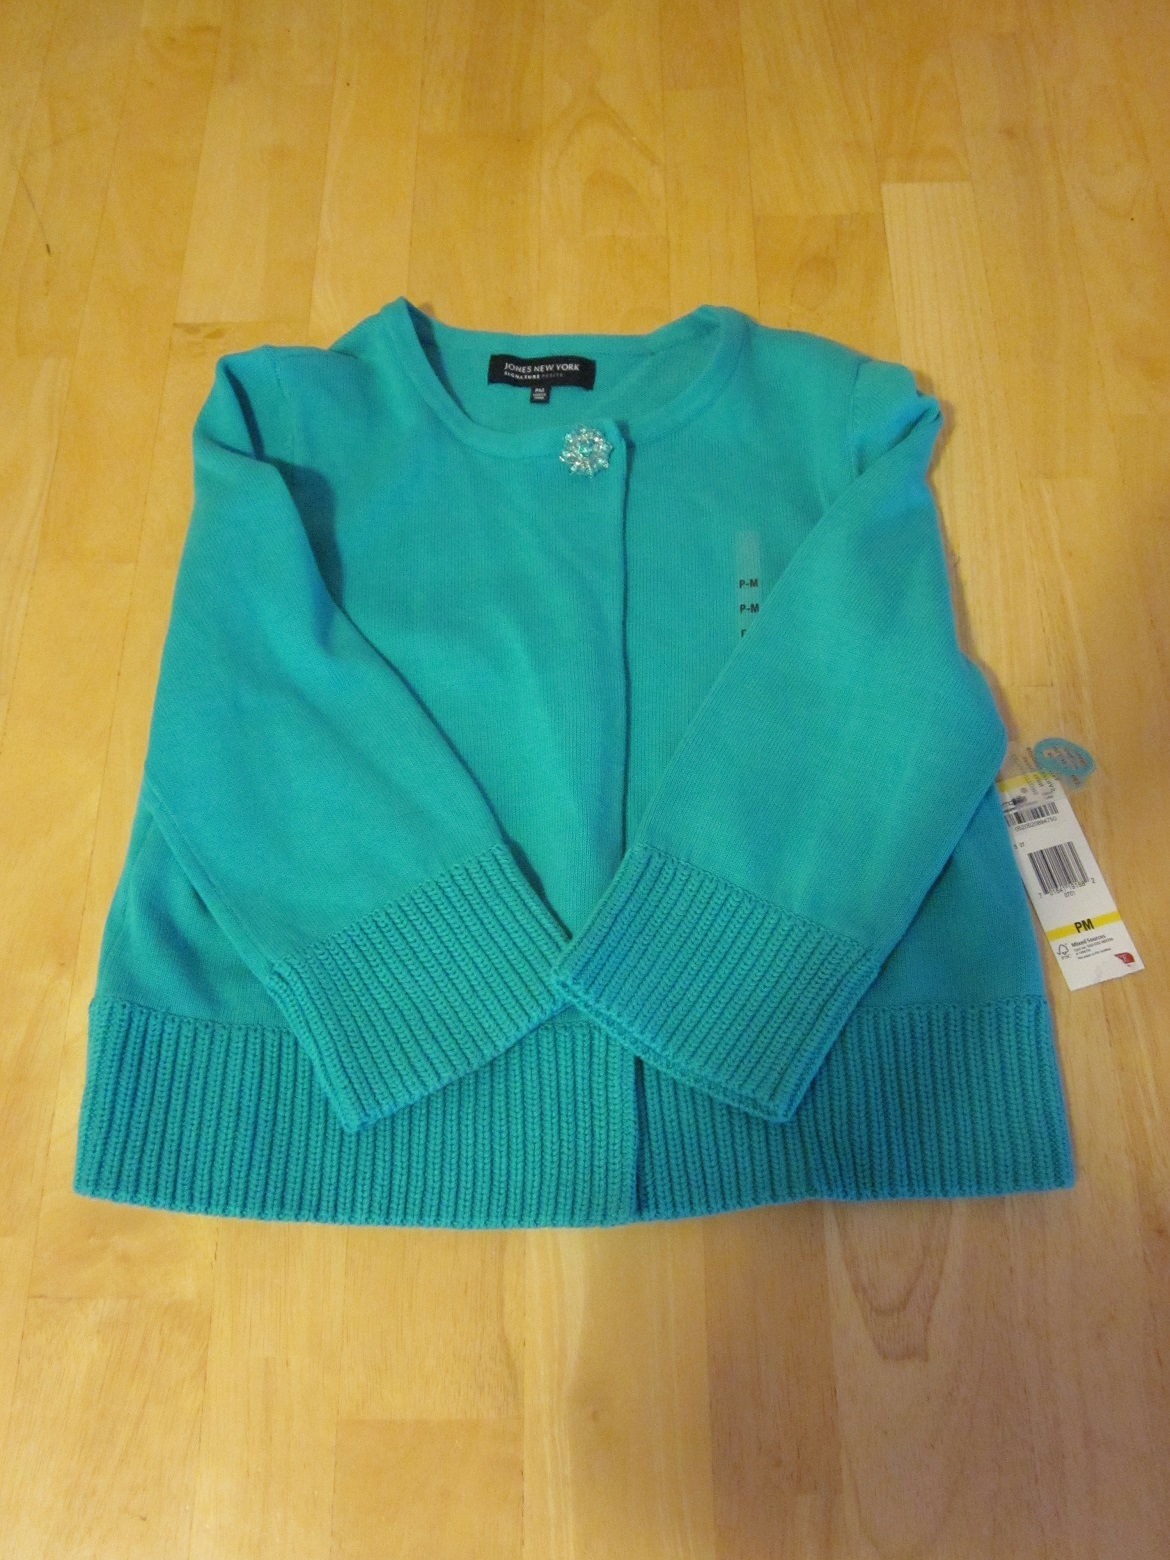 Jones New York Signature Petite Turquoise Sweater - Size PM